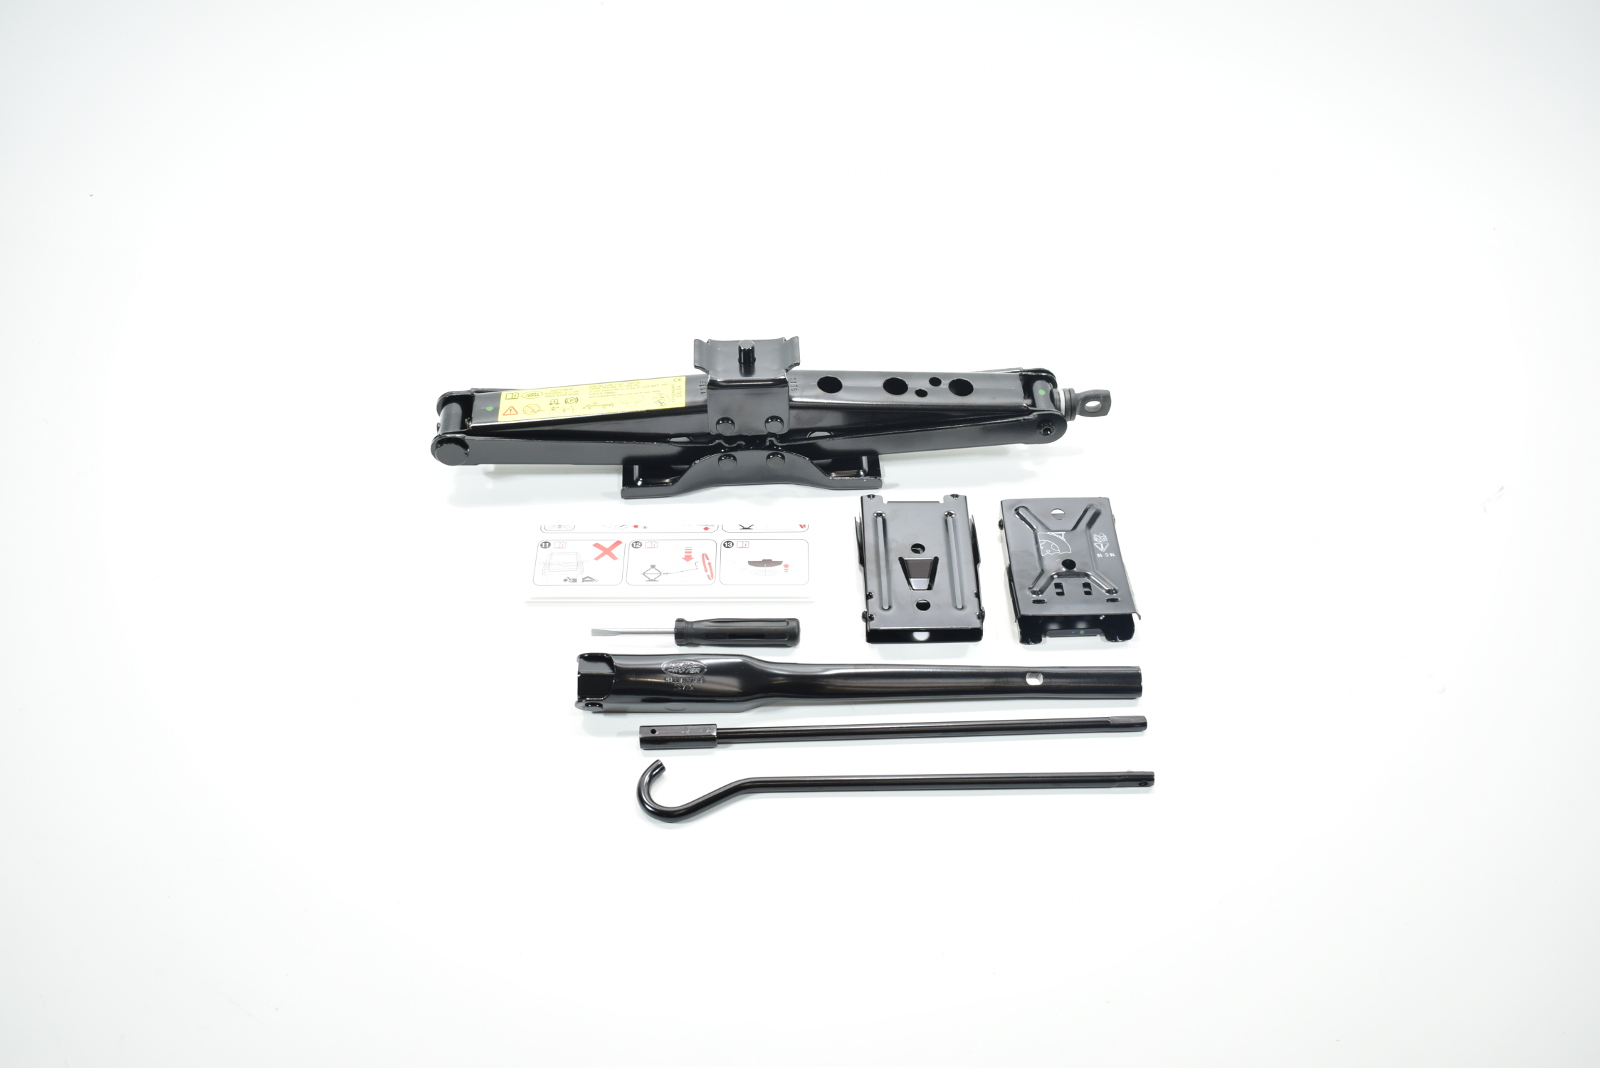 Land Rover Defender Parts And Accessories